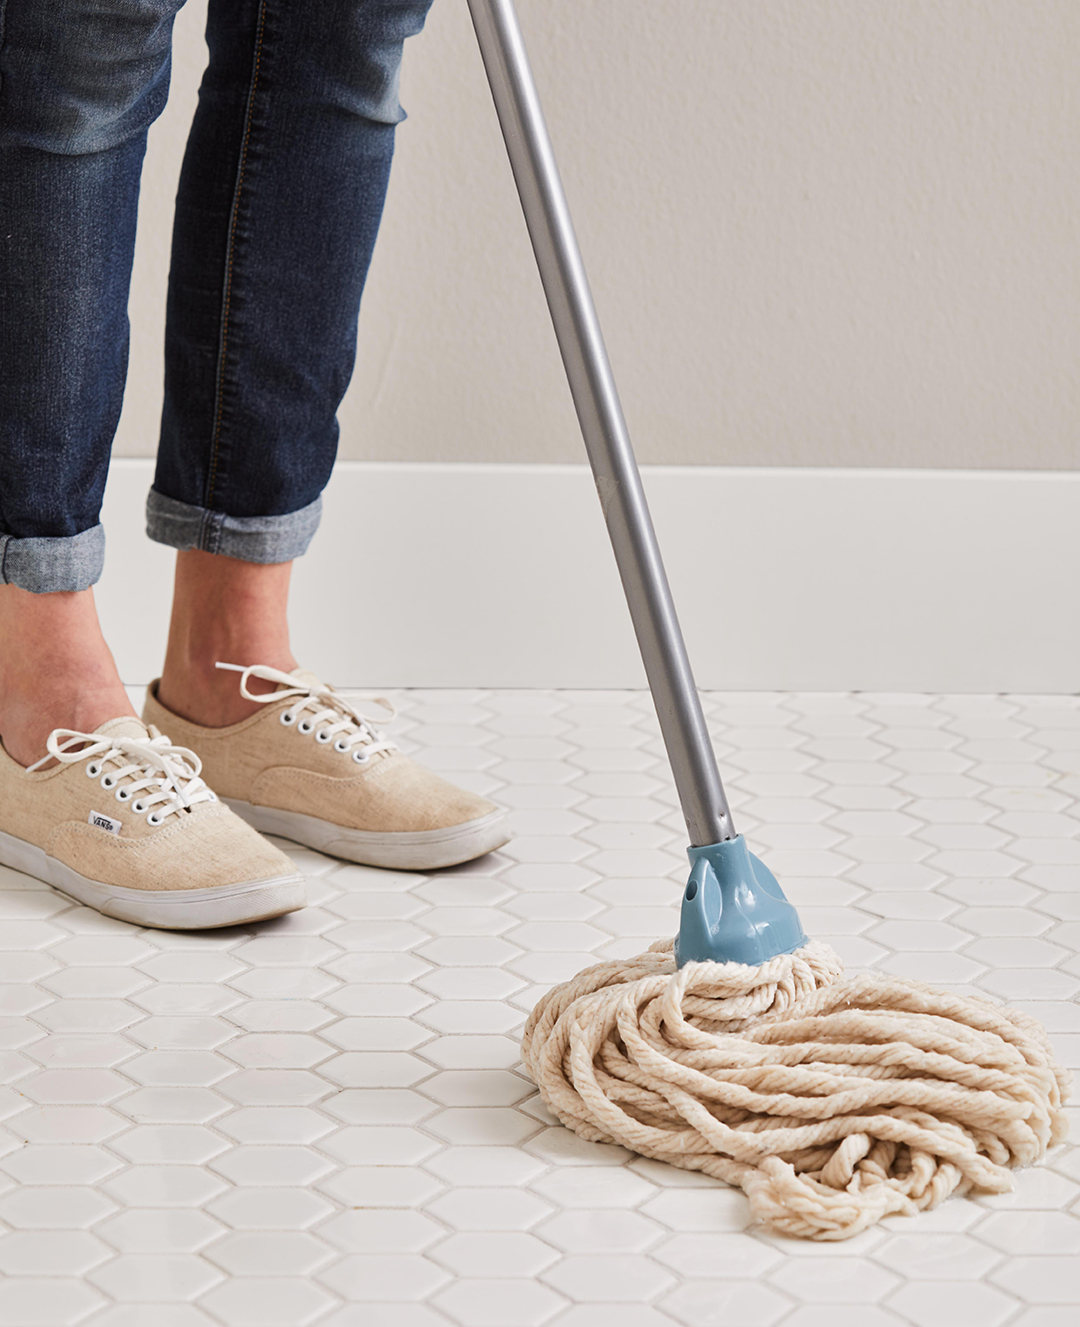 using string mop on tile floor